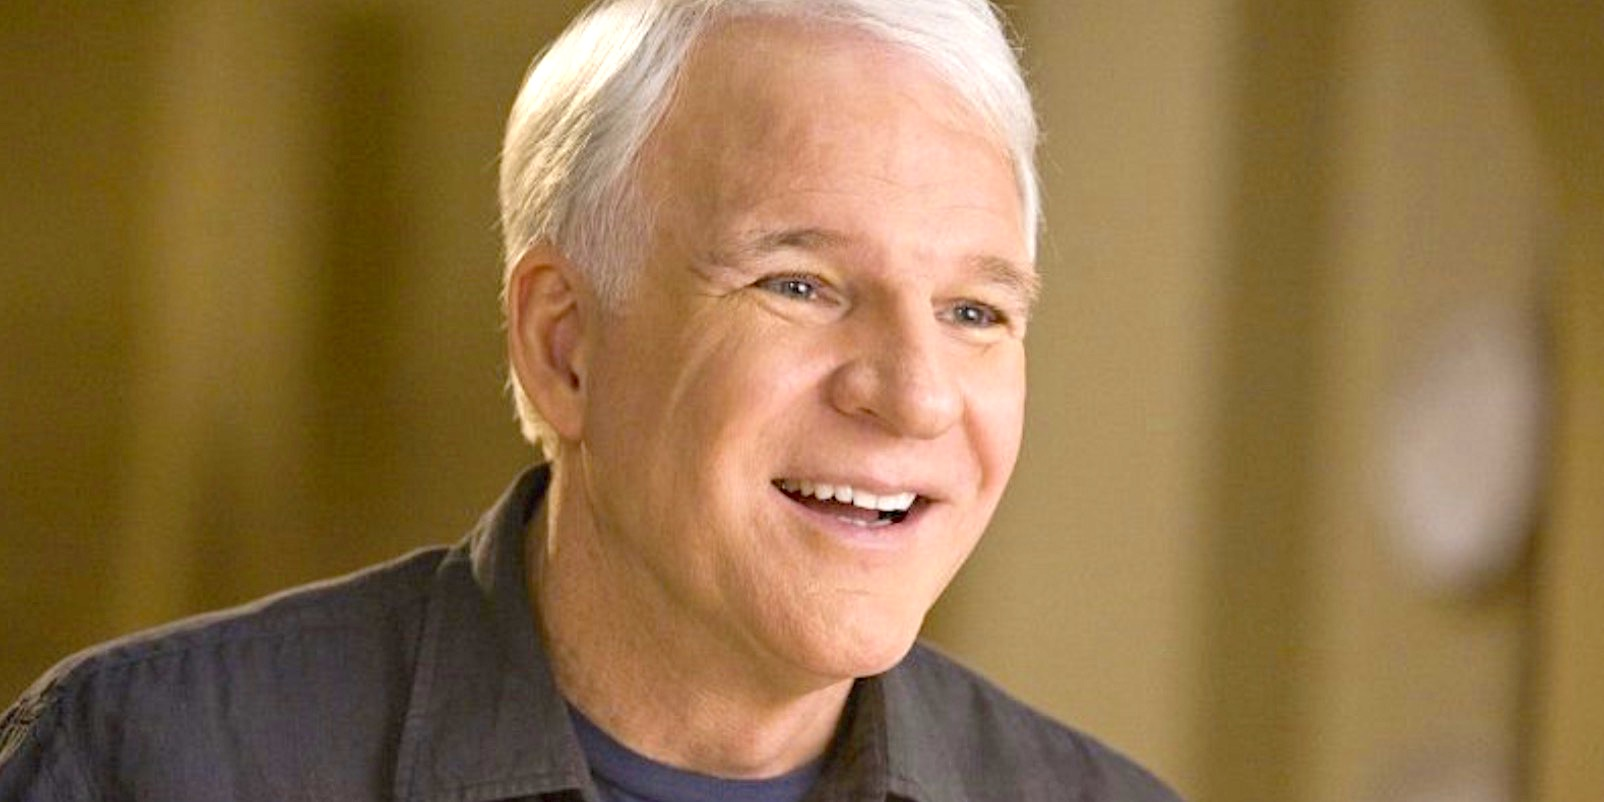 Steve Martin smiling in a scene from It's Complicated